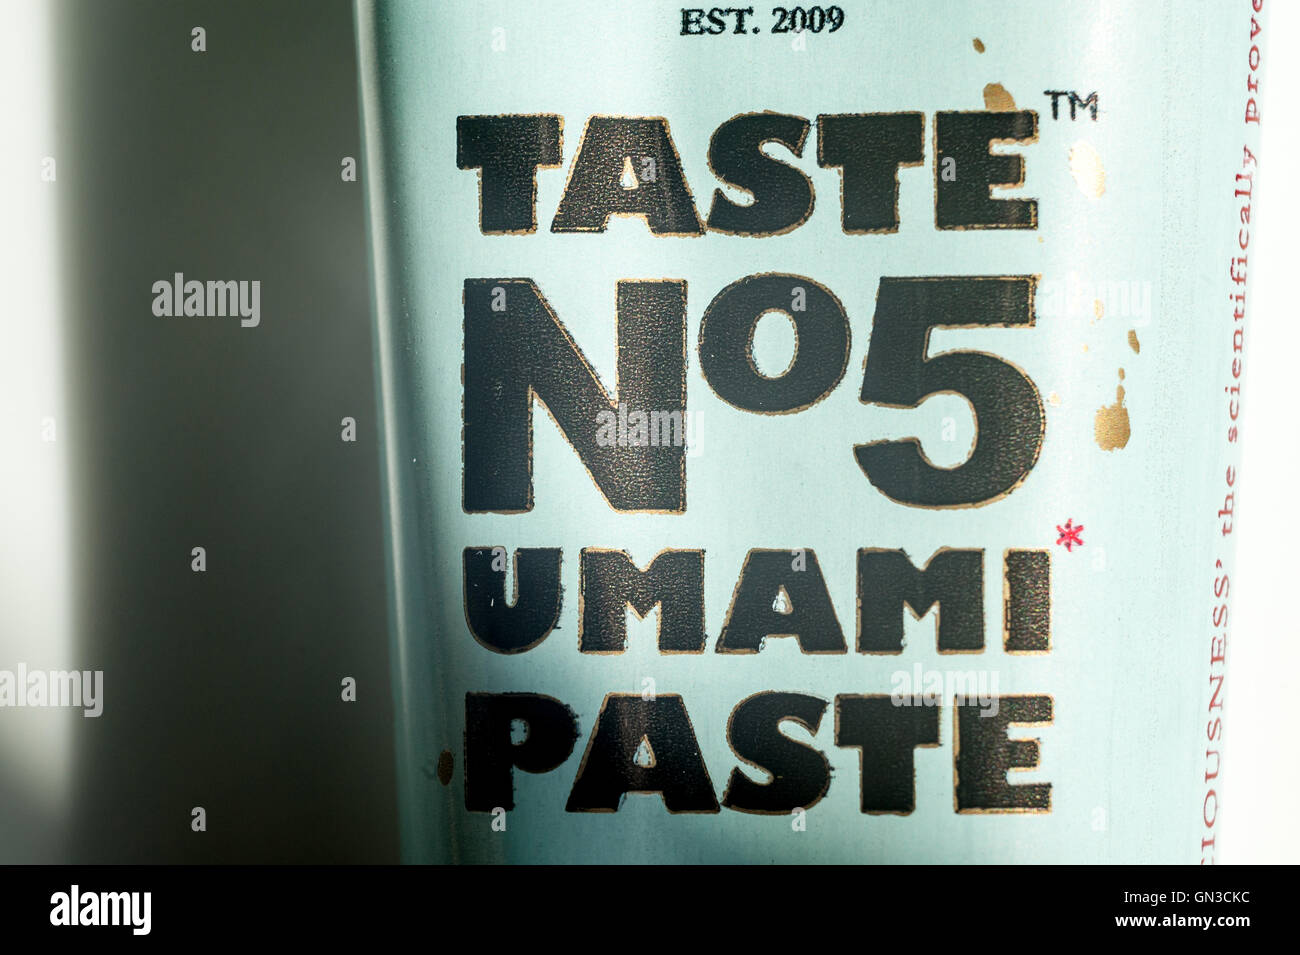 A tube of umami paste, also known as taste number five. - Stock Image